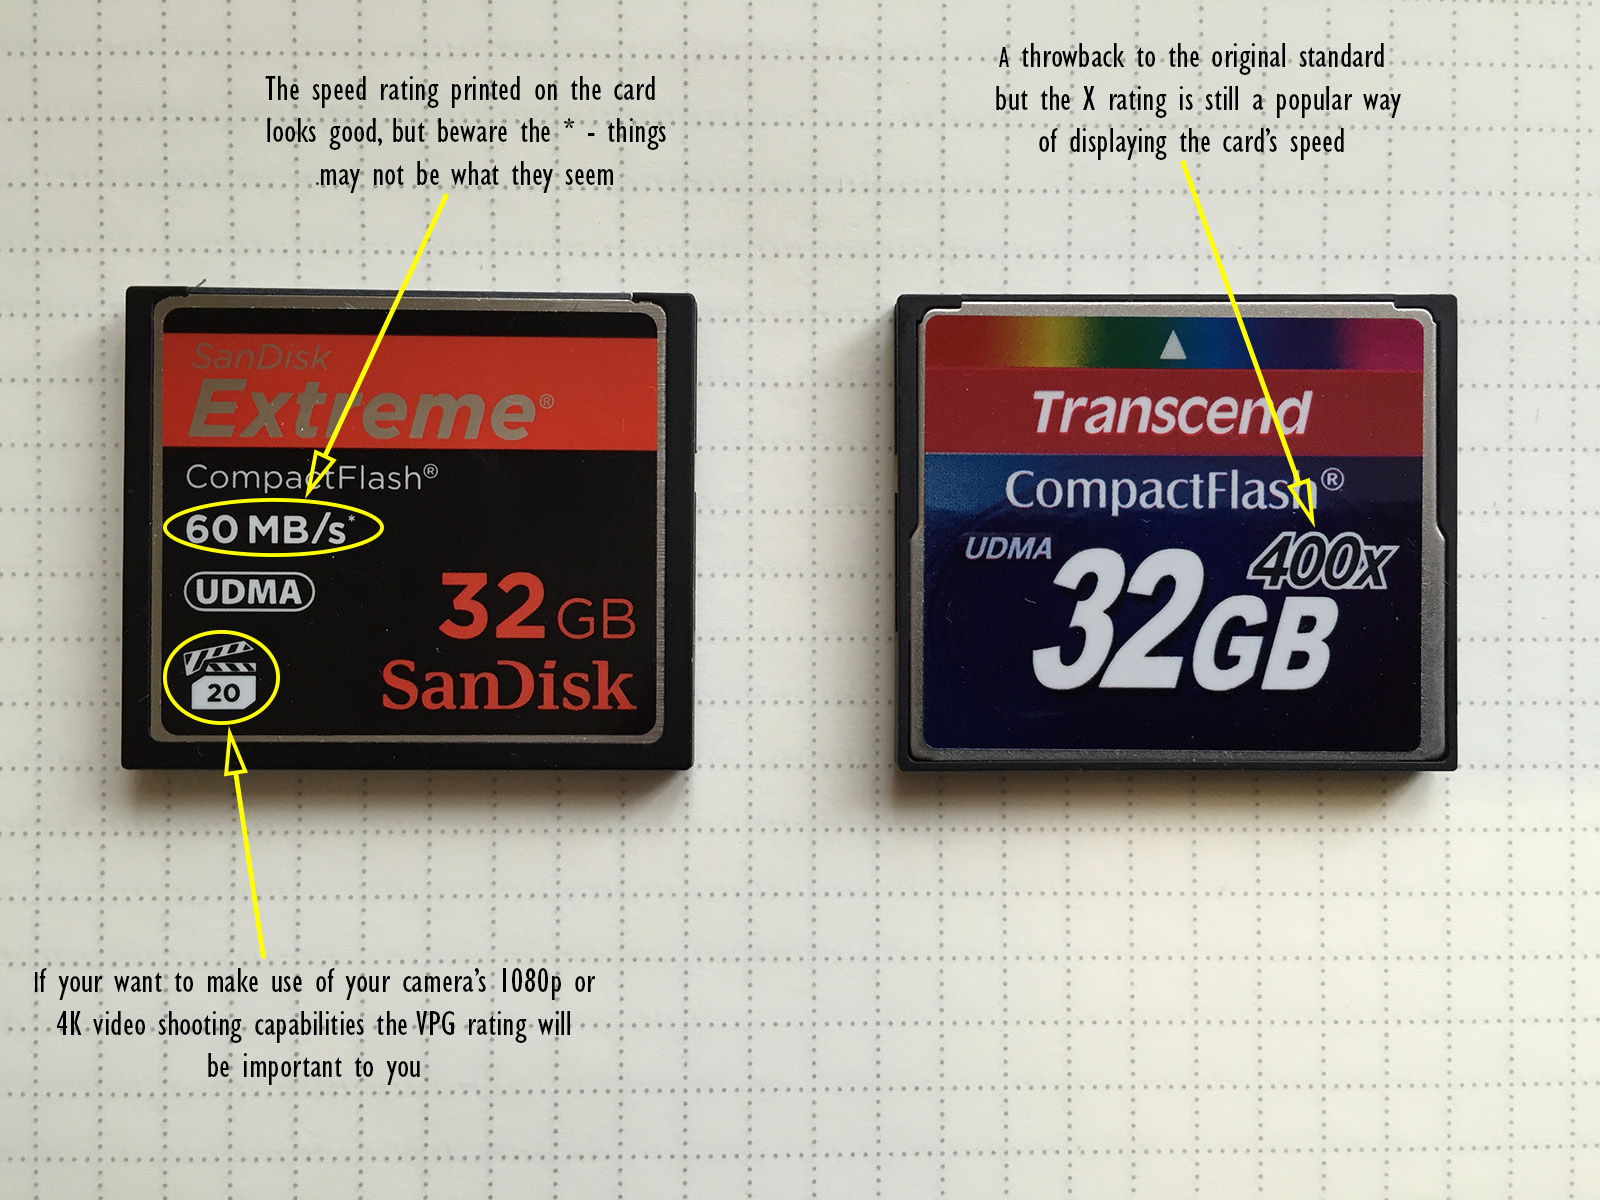 No standard ways of indicating speed and lots of symbols can be confusing, especially when all you need to know is the card's speed in MB/s.